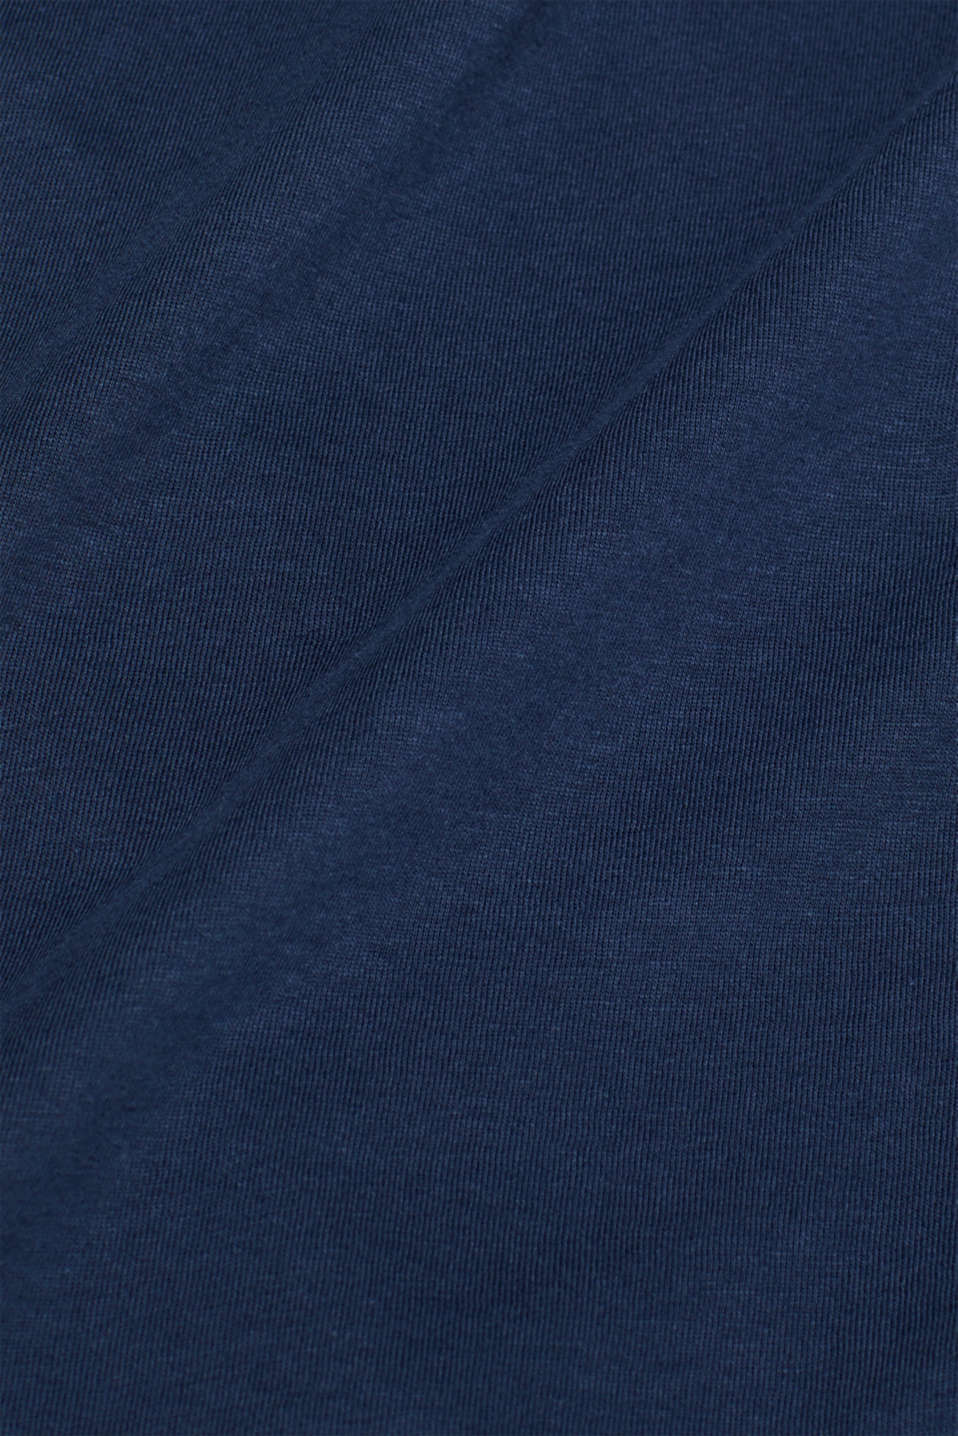 Jersey cotton top, NAVY, detail image number 4